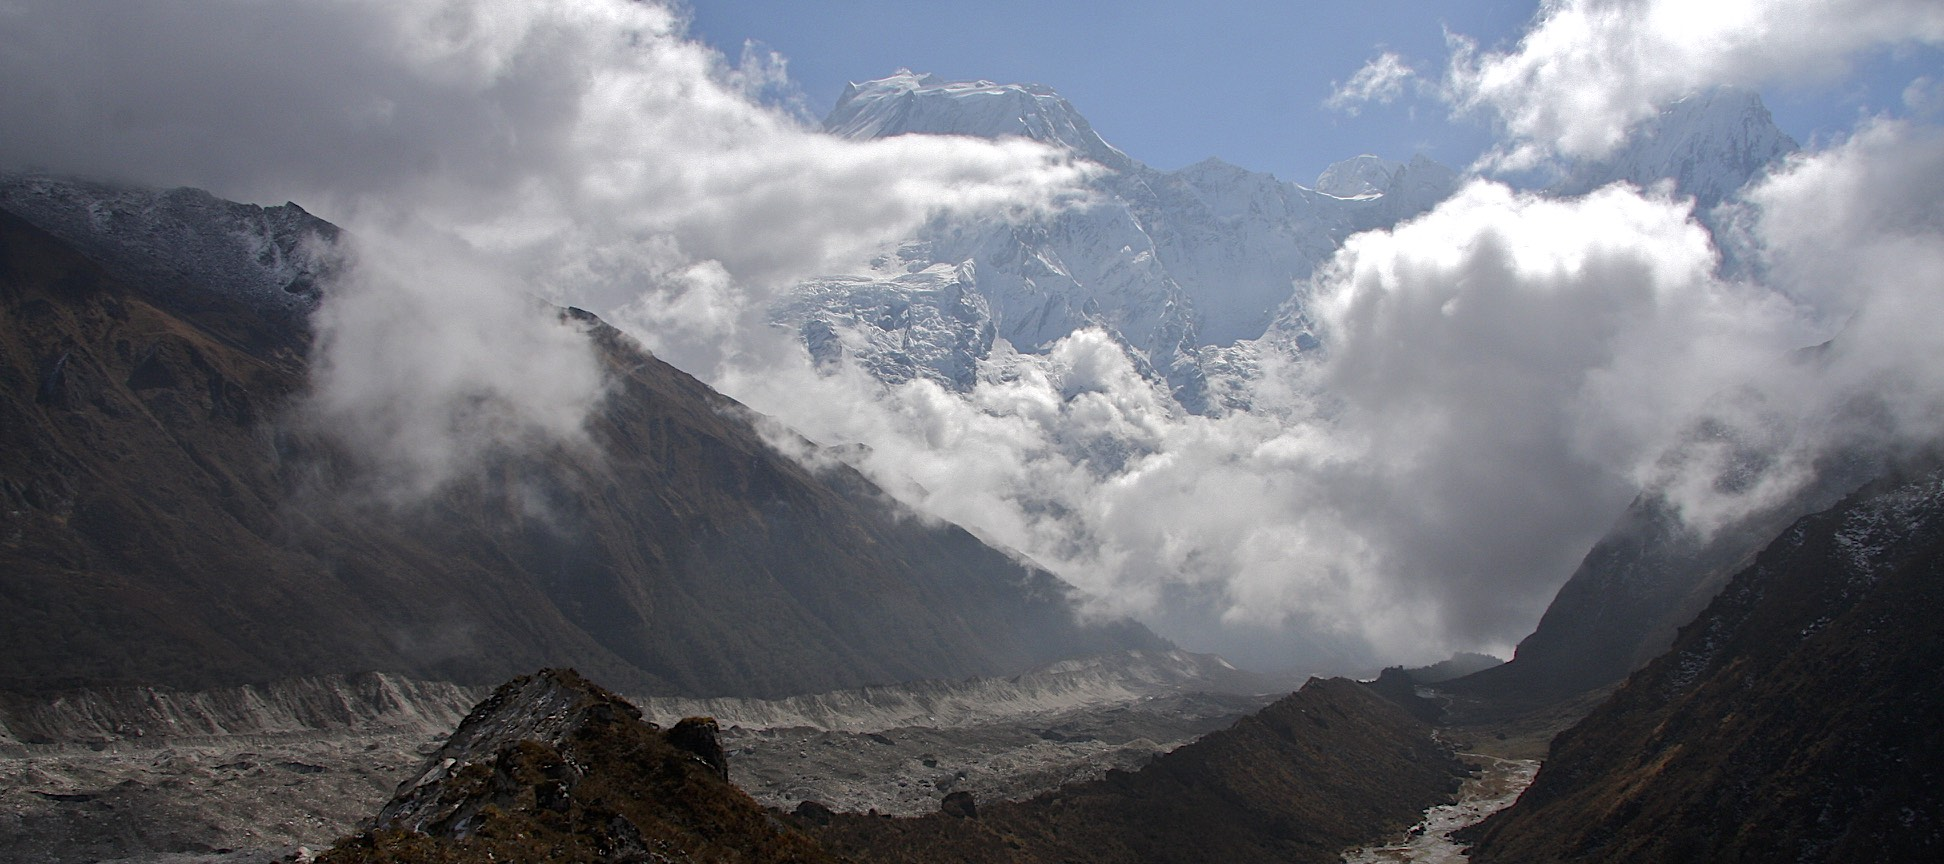 Manaslu and Tchoche Glacier